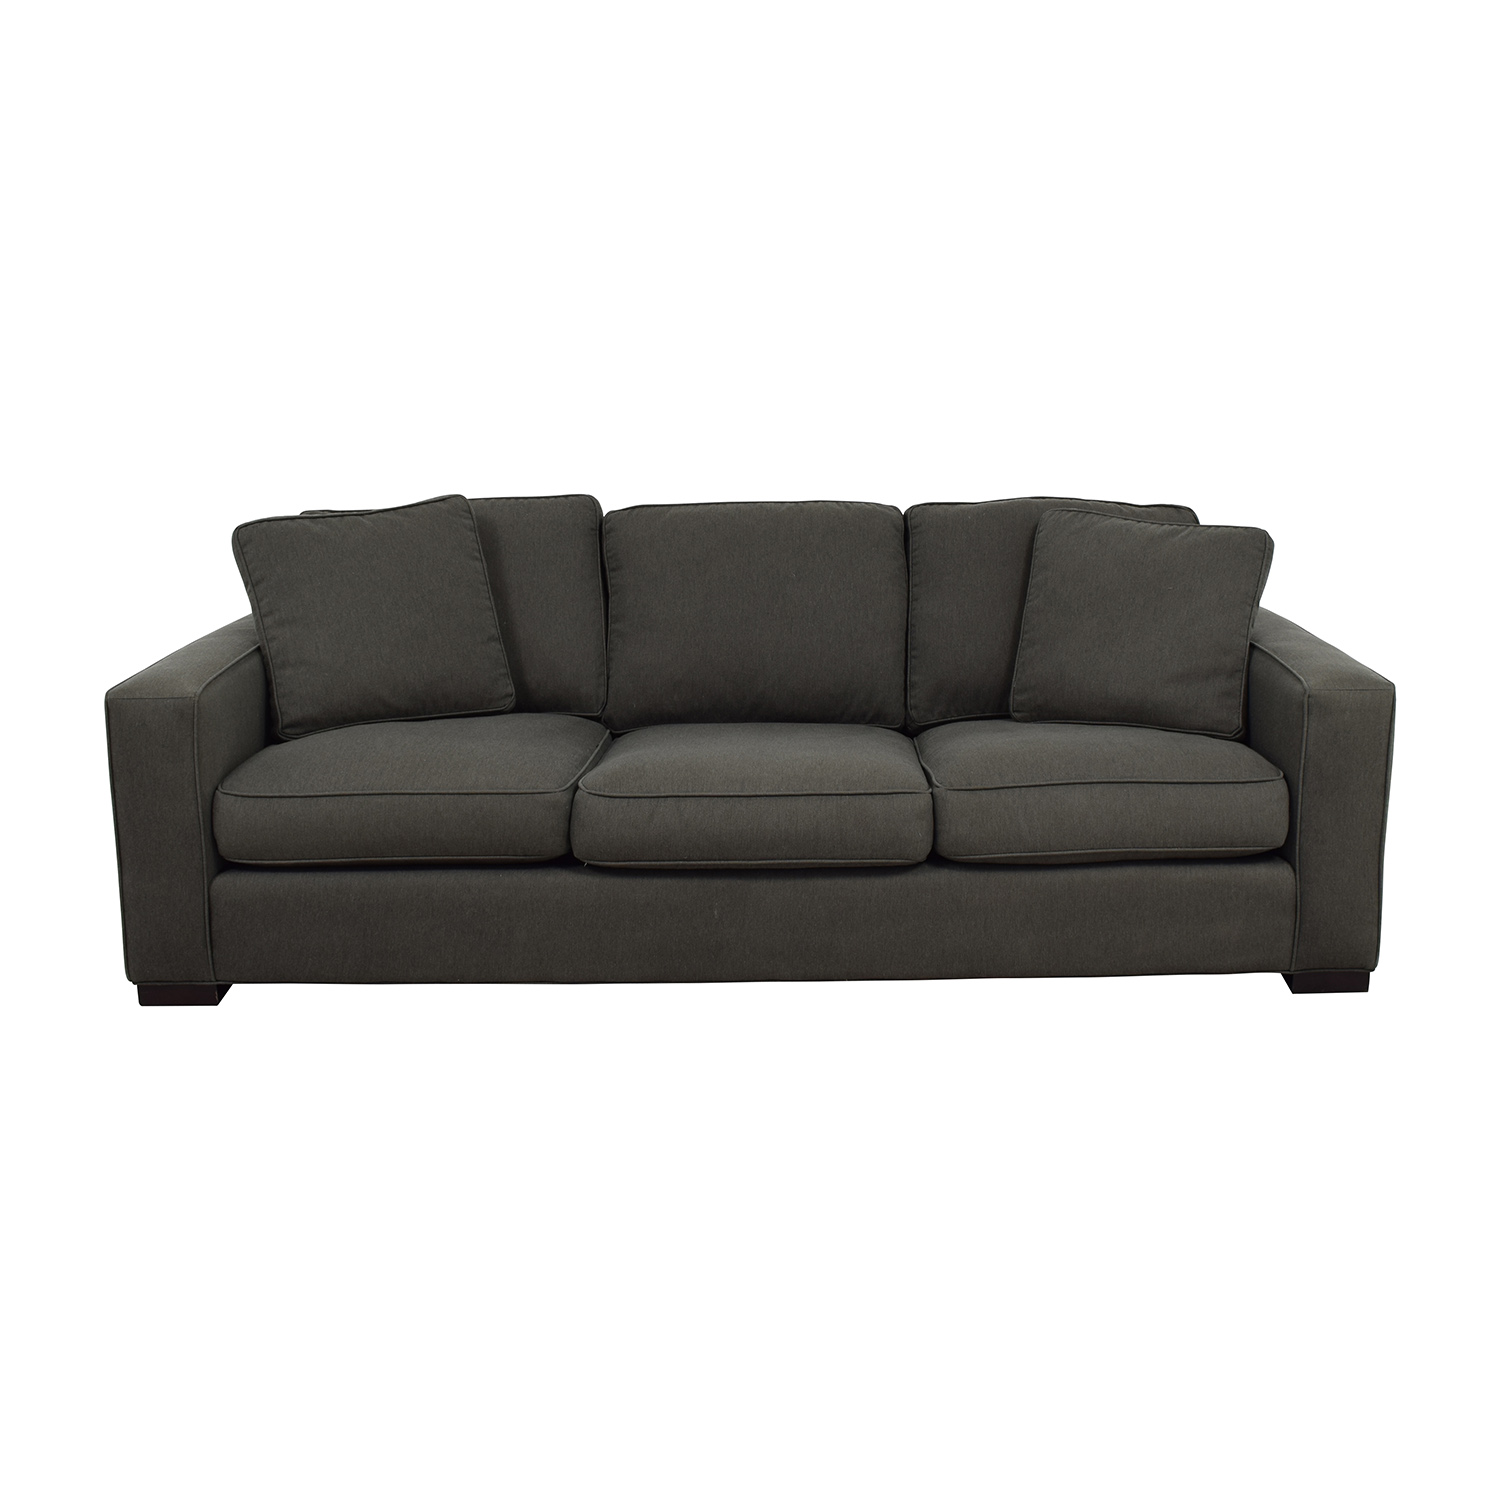 room and board metro sleeper sofa leather set in kerala buy quality second hand furniture